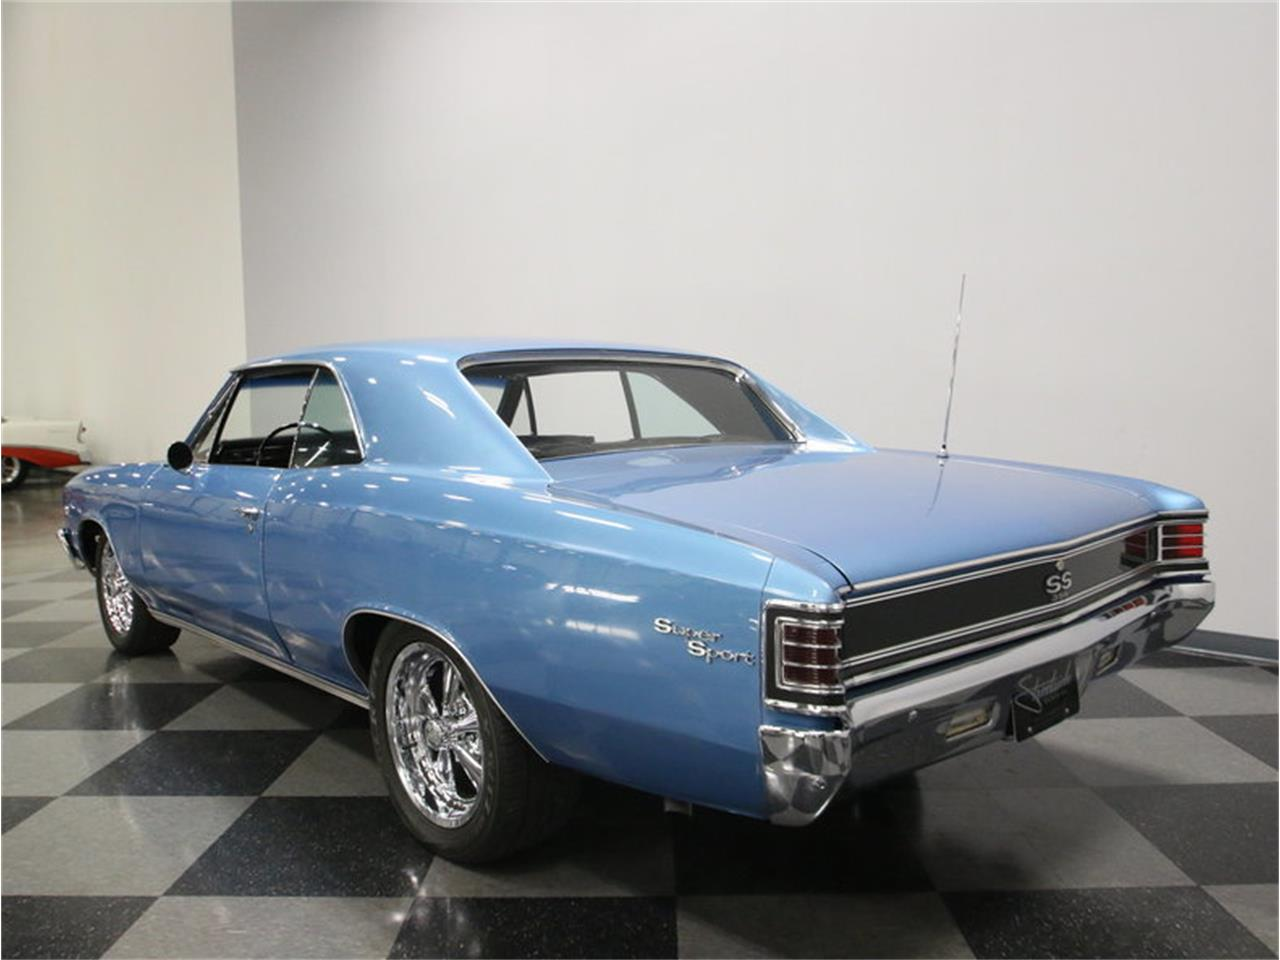 Large Picture of 1967 Chevrolet Chevelle SS located in Tennessee - $39,995.00 Offered by Streetside Classics - Nashville - MD75